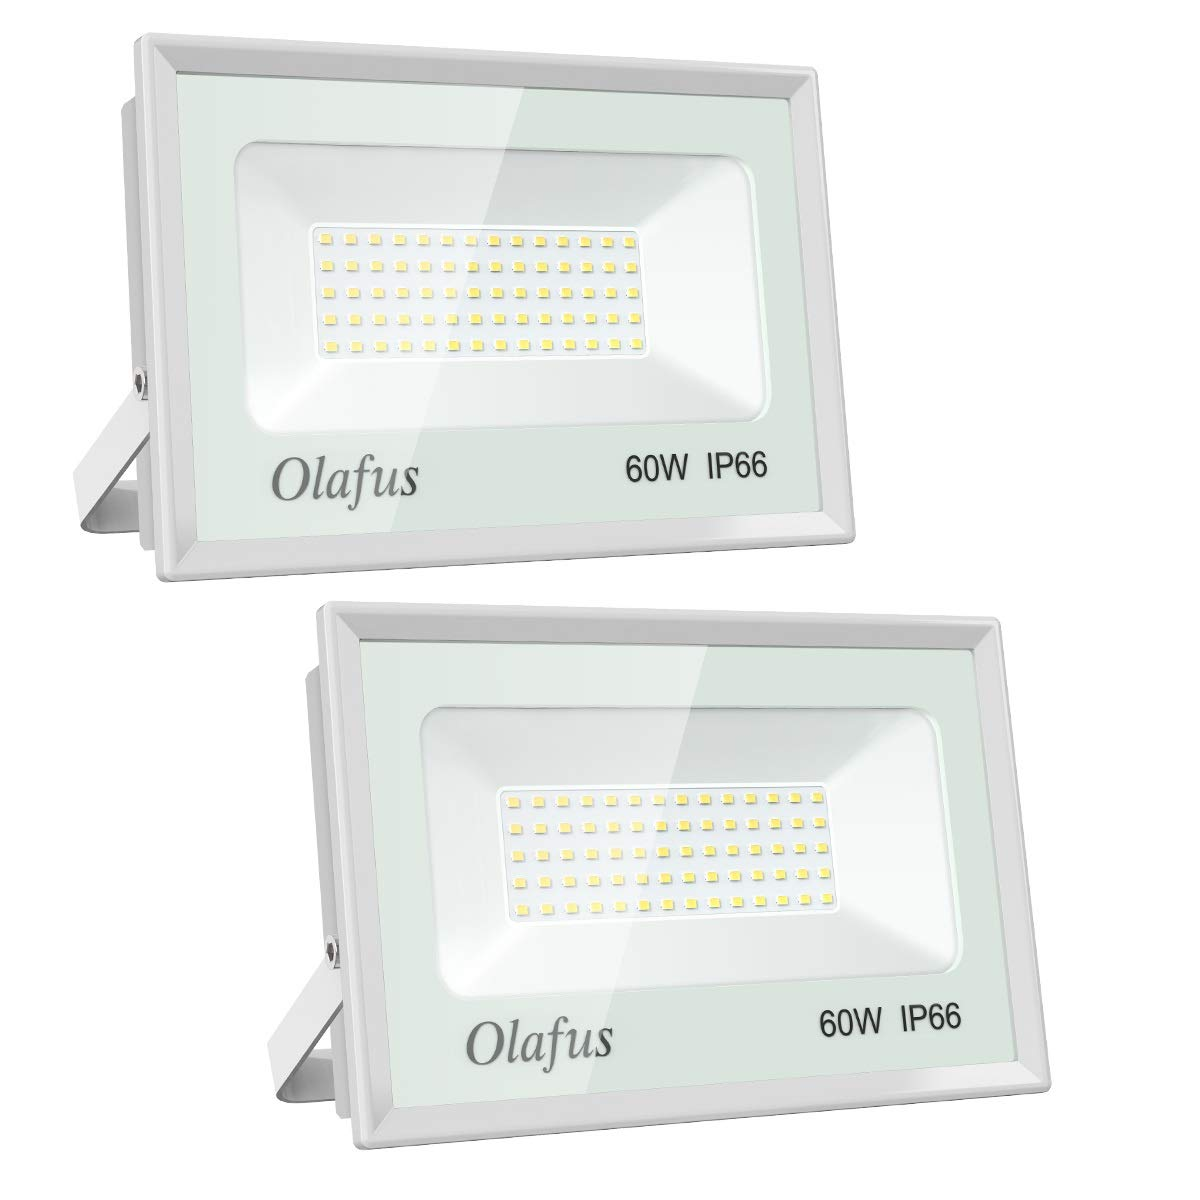 Olafus 2 Pack 60W LED Flood Light, 6600LM, 300W Halogen Blub Equivalent IP66 Waterproof Outdoor Floodlights Ultra Bright for Playground, Entryway, Yard, Basement 5000K Daylight White